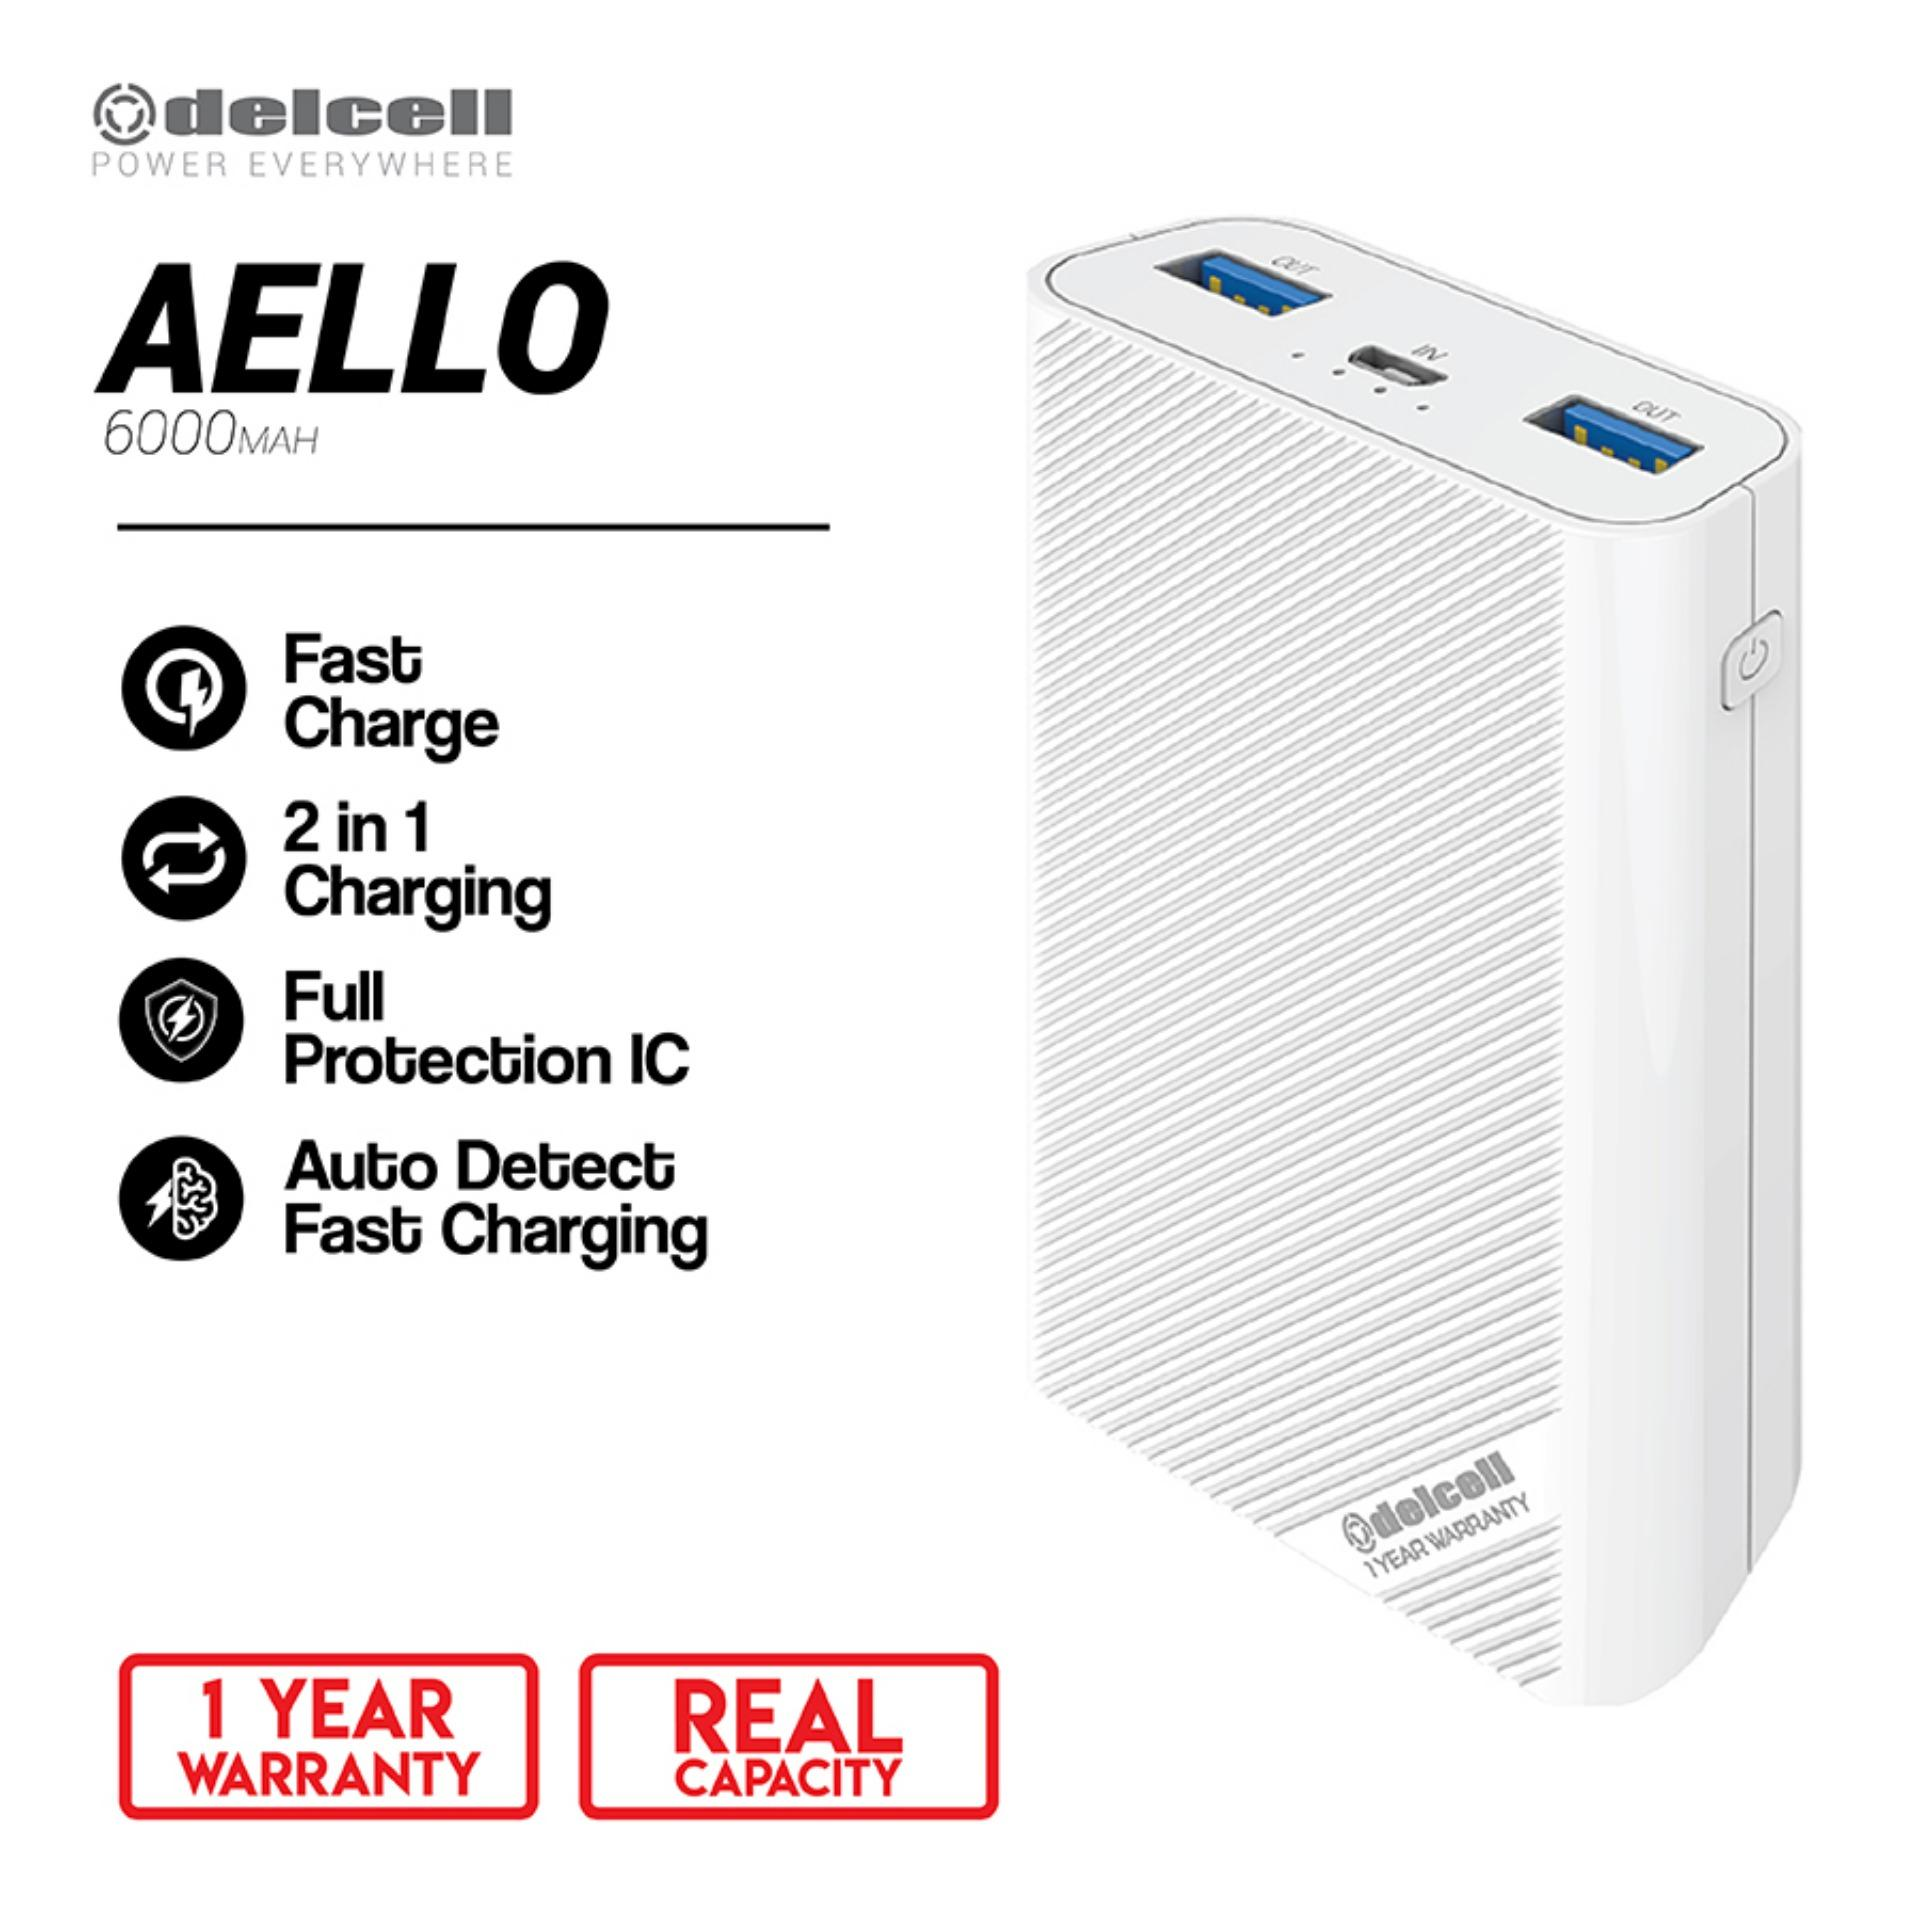 New Arrival Delcell 6000mAh Powerbank AELLO Real Capacity Small Power Bank Fast Charging Garansi Resmi 1